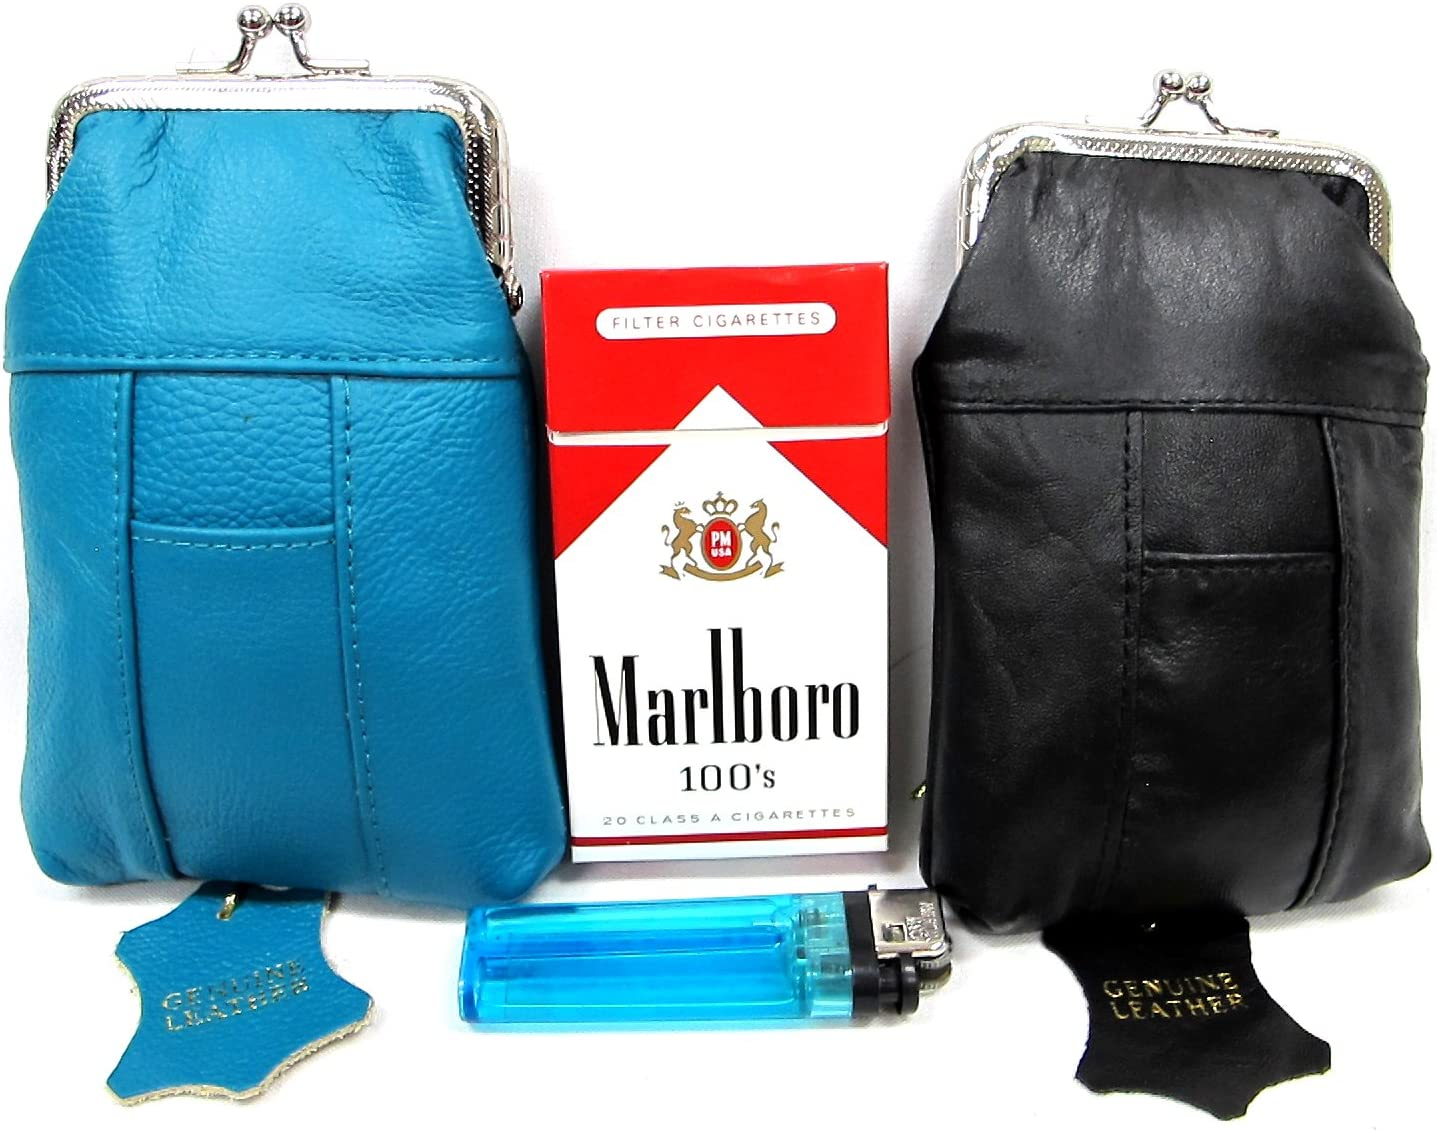 Leather Cigarette Case 2pc Set Genuine Max 44% OFF Year-end gift + Green Pouch Teal Black